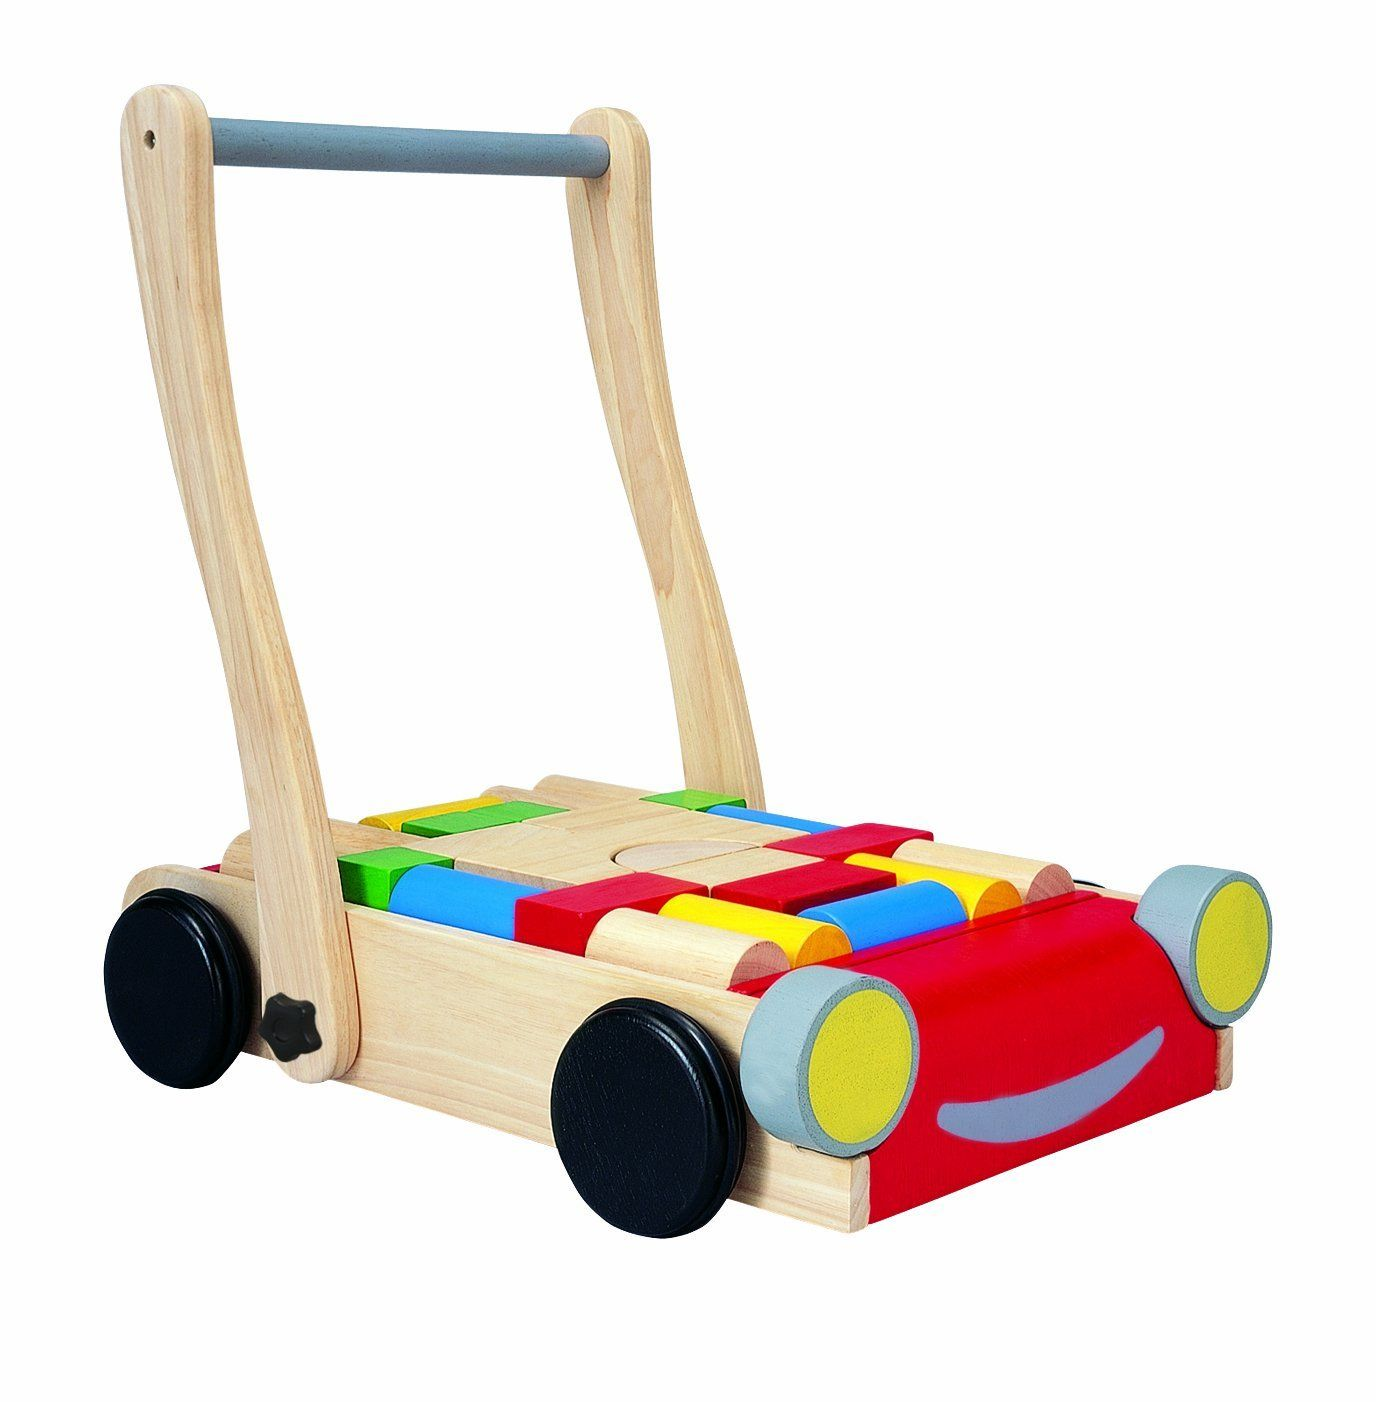 plan toy baby walker includes 24 colored and natural blocks